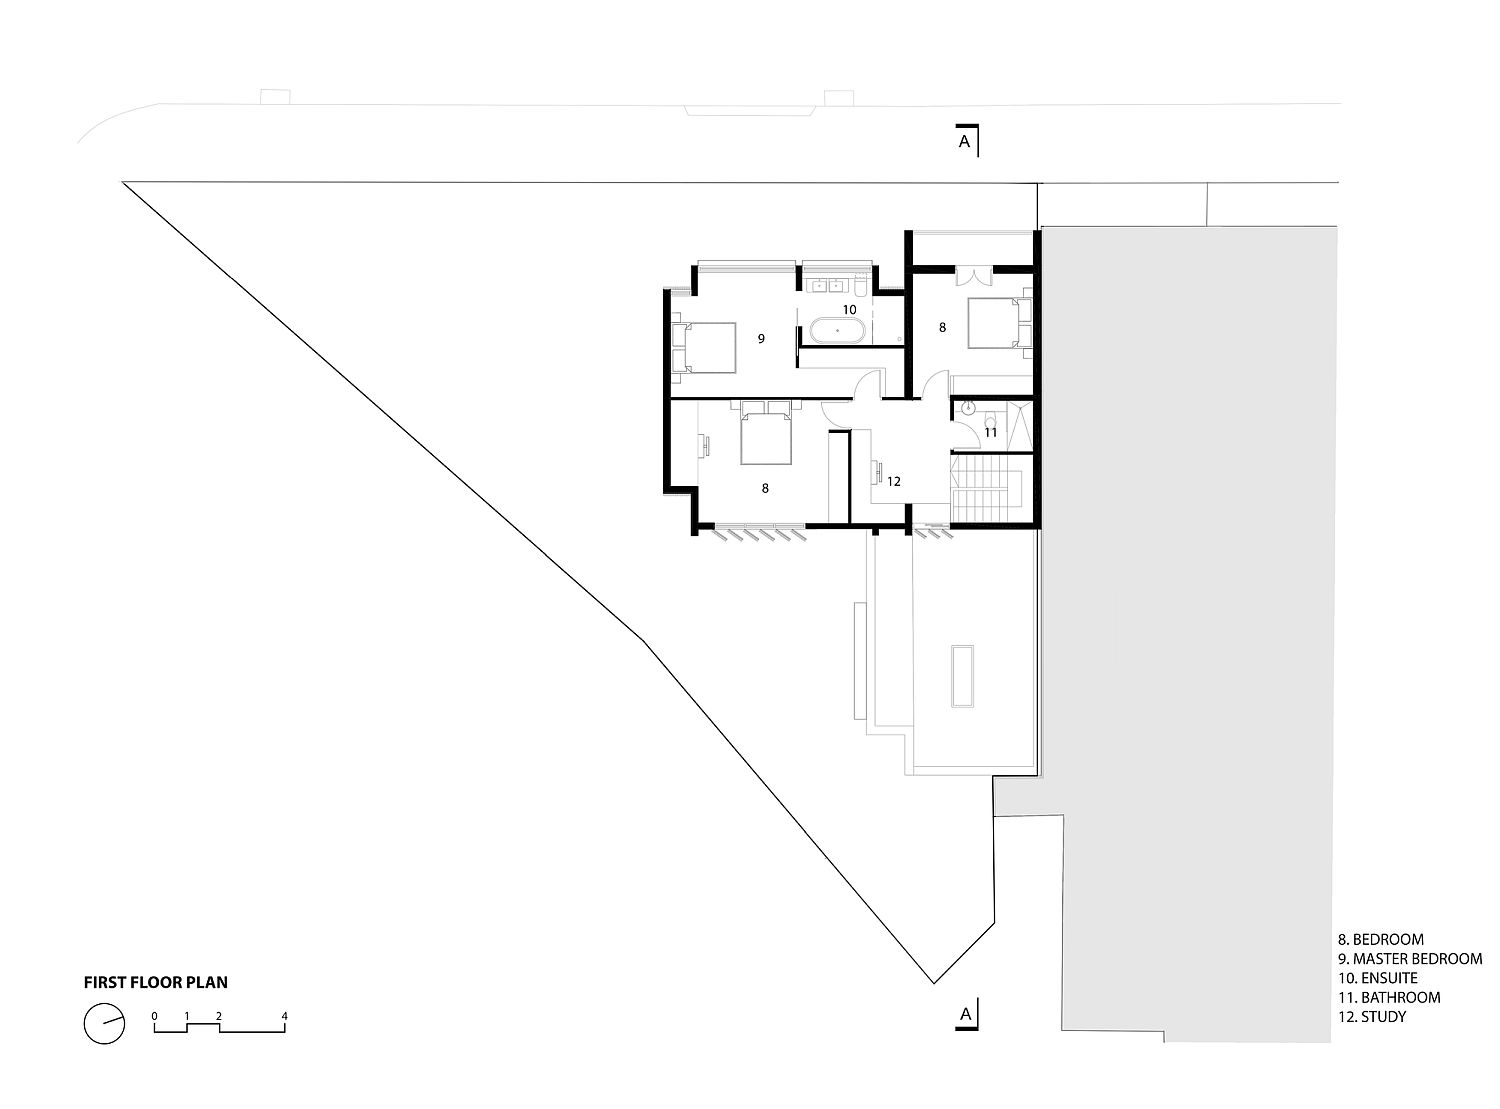 First floor plan of House 2040 in Sydney